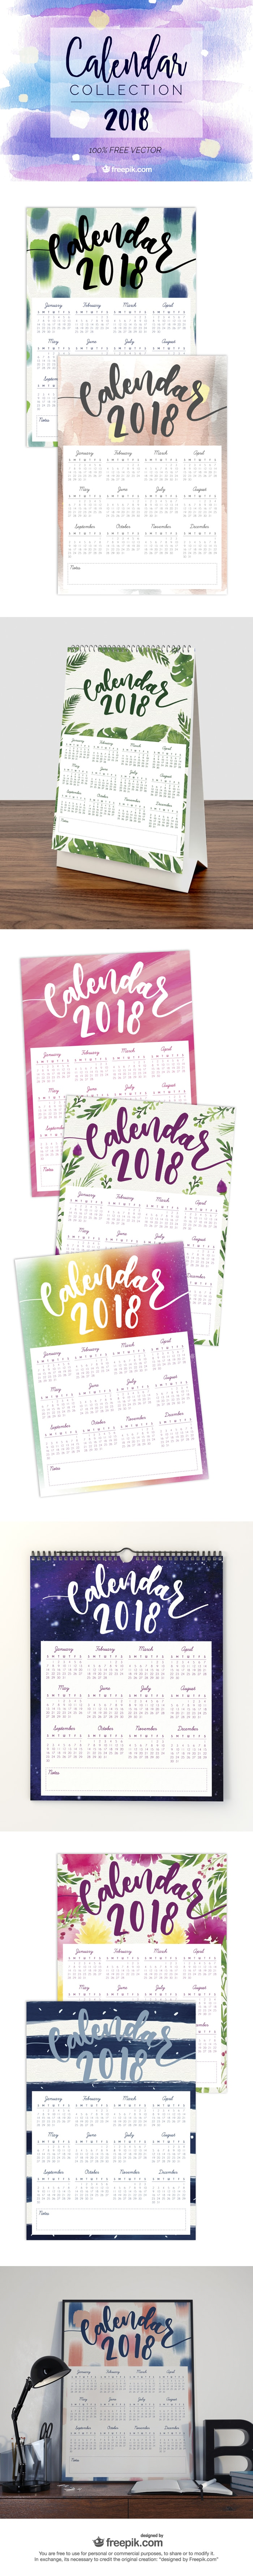 2018 calendar designs watercolor